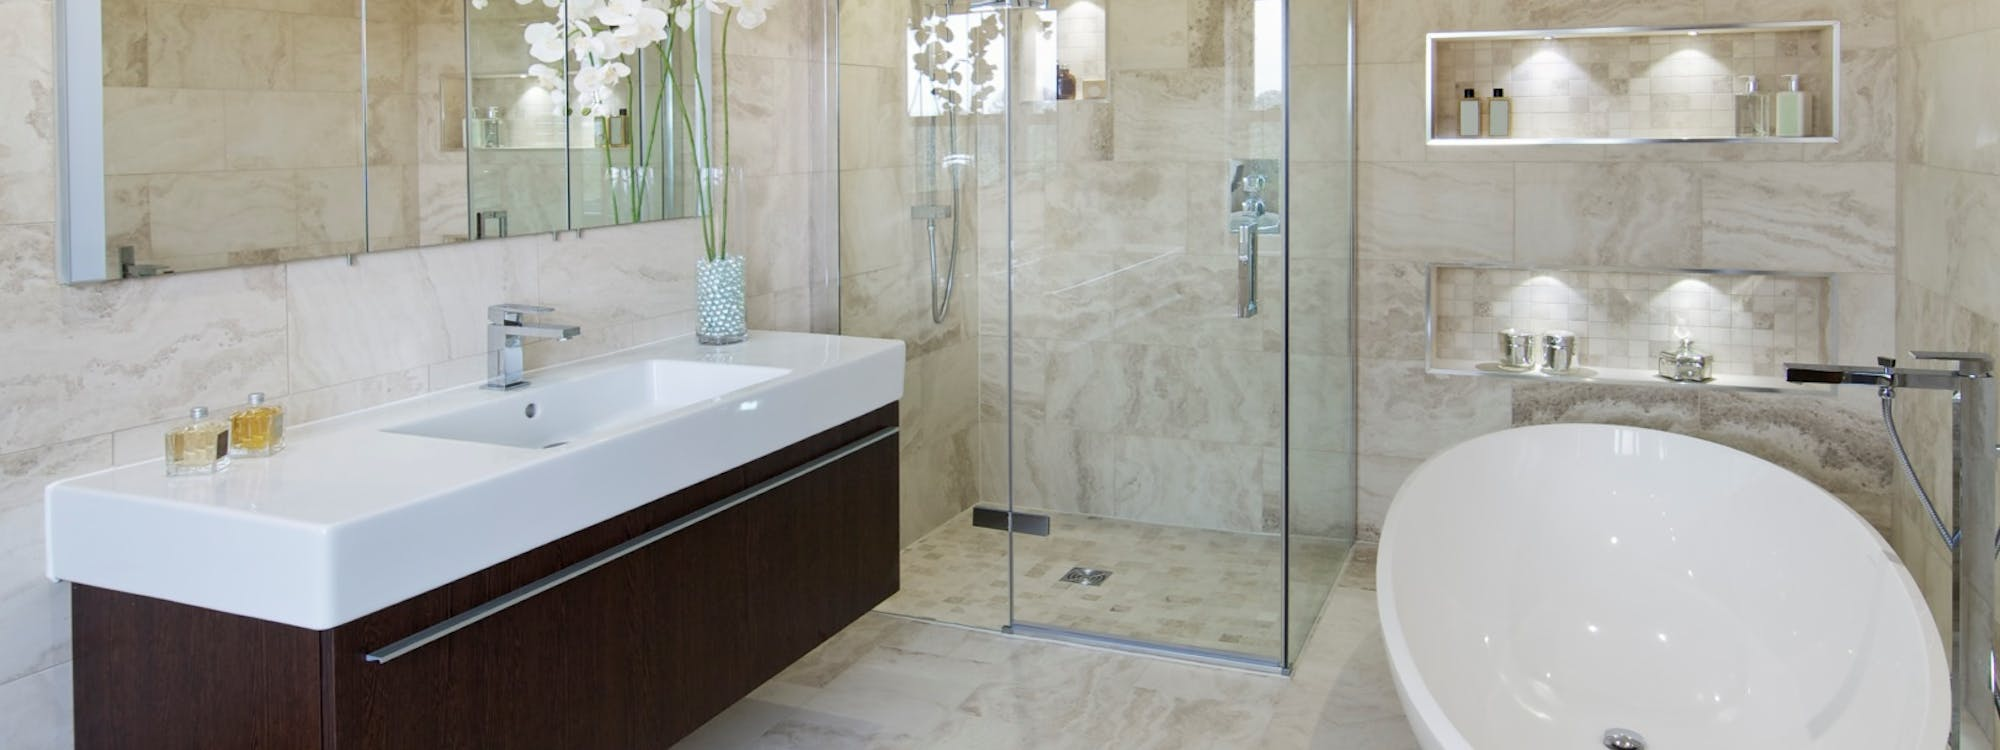 Halifax Bathrooms | Bathroom Showroom Halifax | More Bathrooms